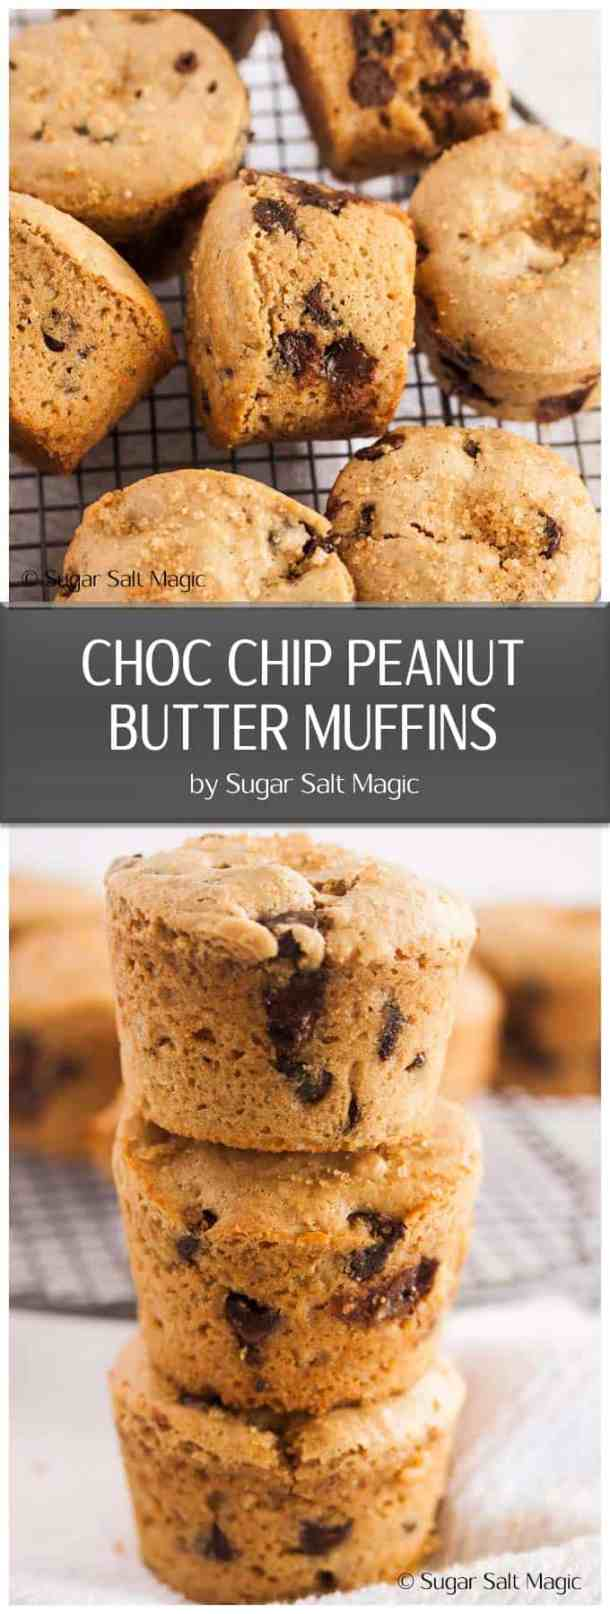 Making muffins from scratch is so easy and these Choc Chip Peanut Butter Muffins have stacks of flavour too. #peanutbutter #chocchipmuffins